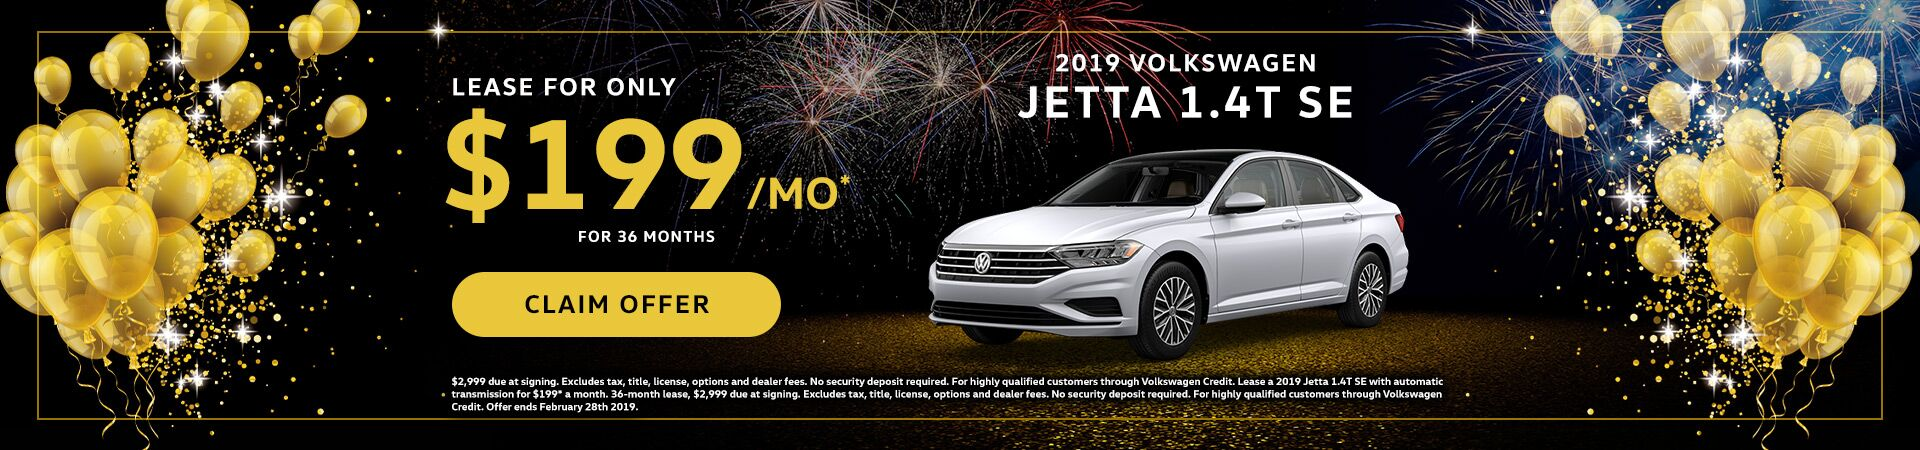 2019 VW Jetta January Special